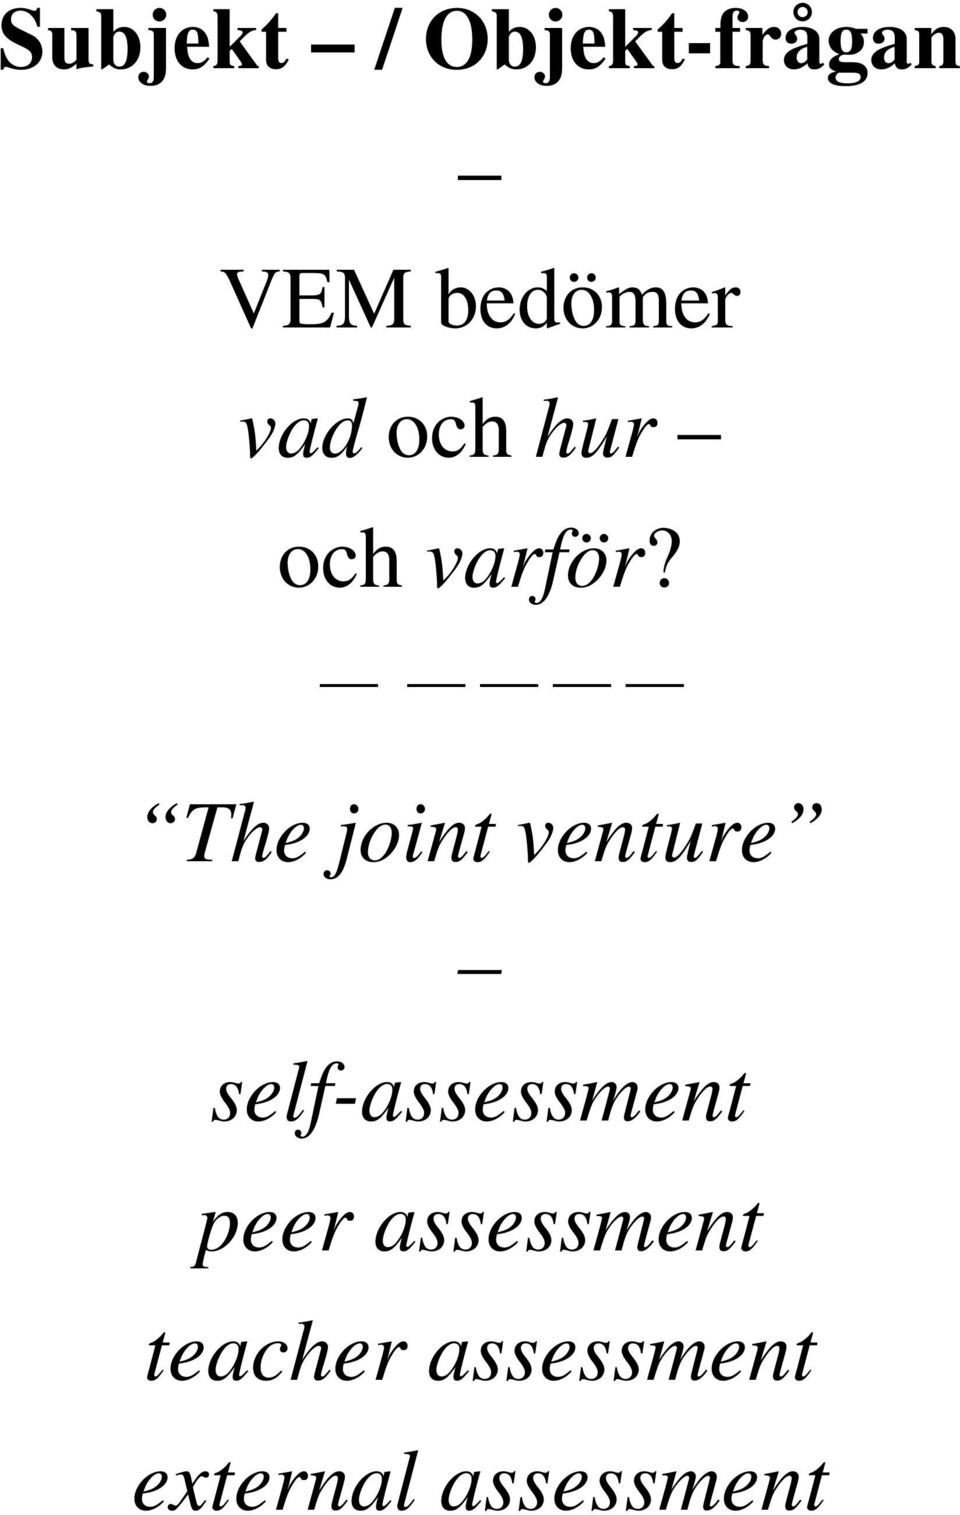 The joint venture self-assessment